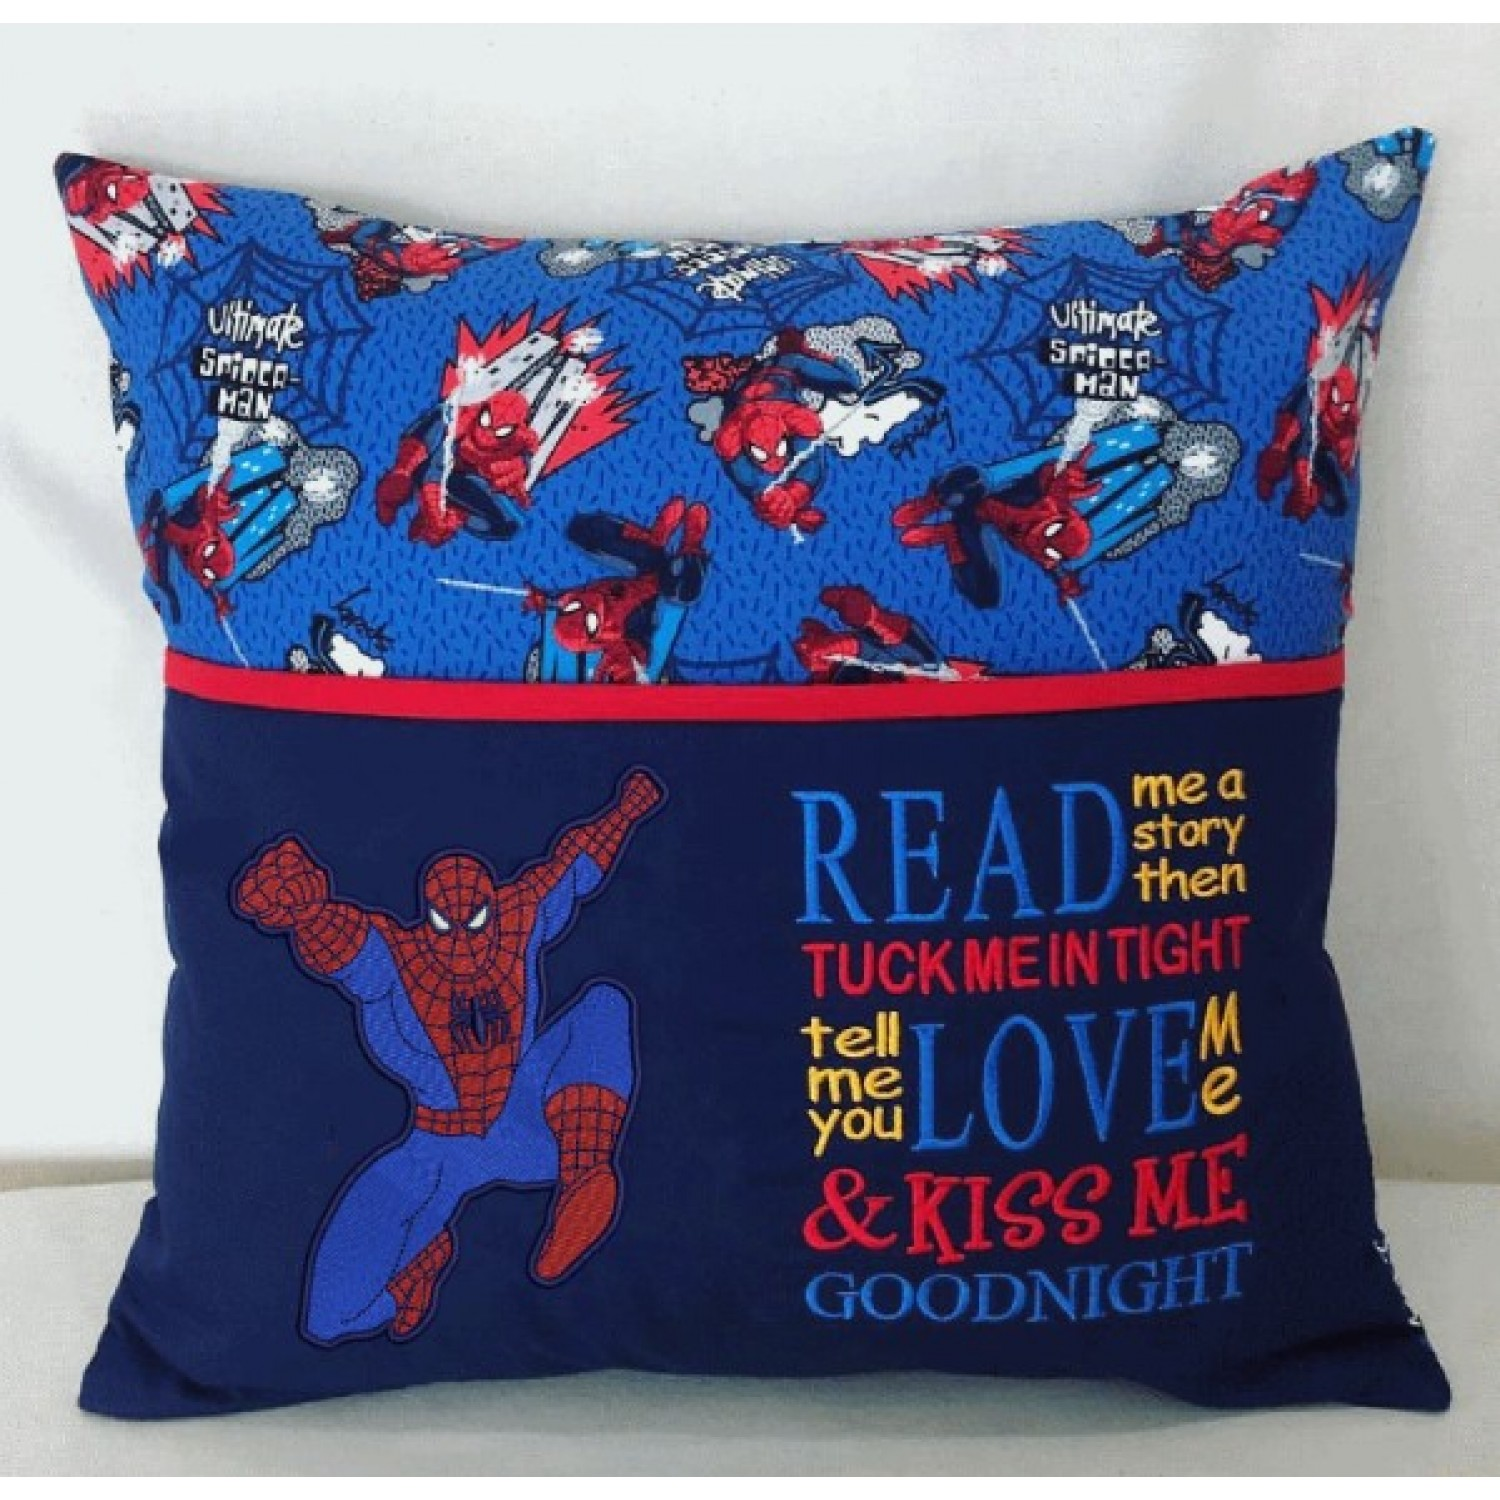 spiderman embroidery with read me a story